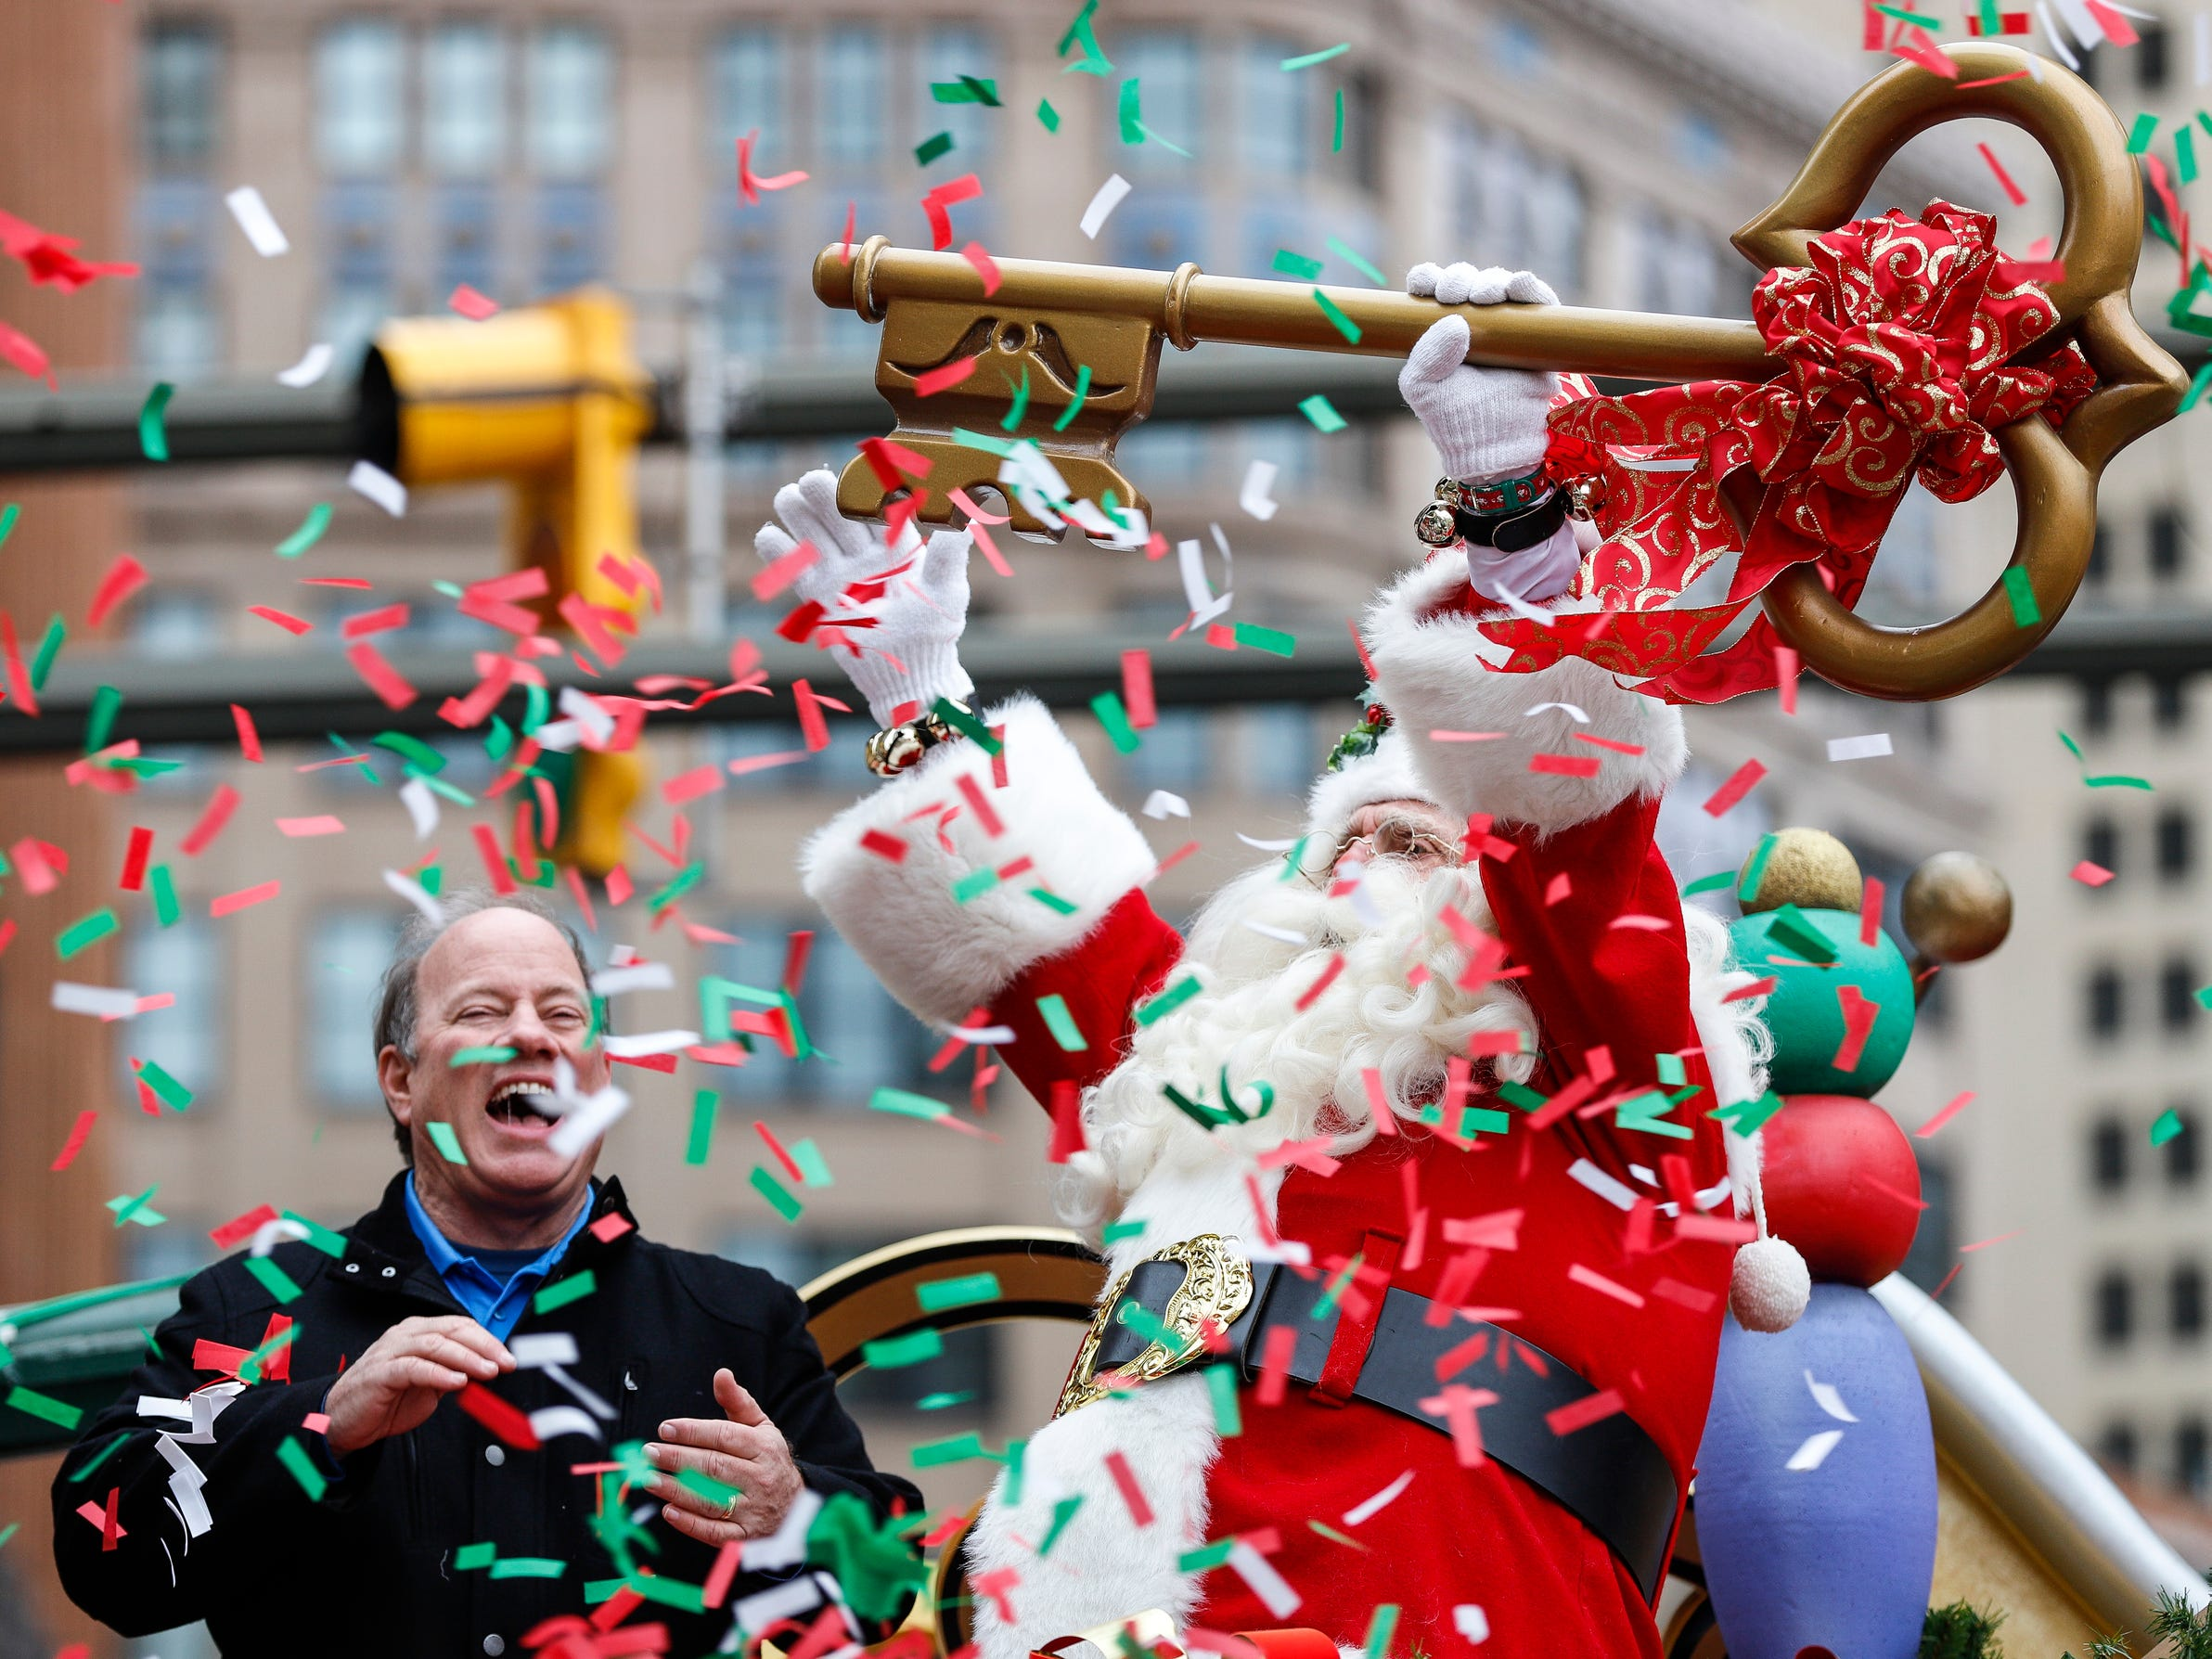 Thanksgiving parade shows Detroit at its best | Opinion